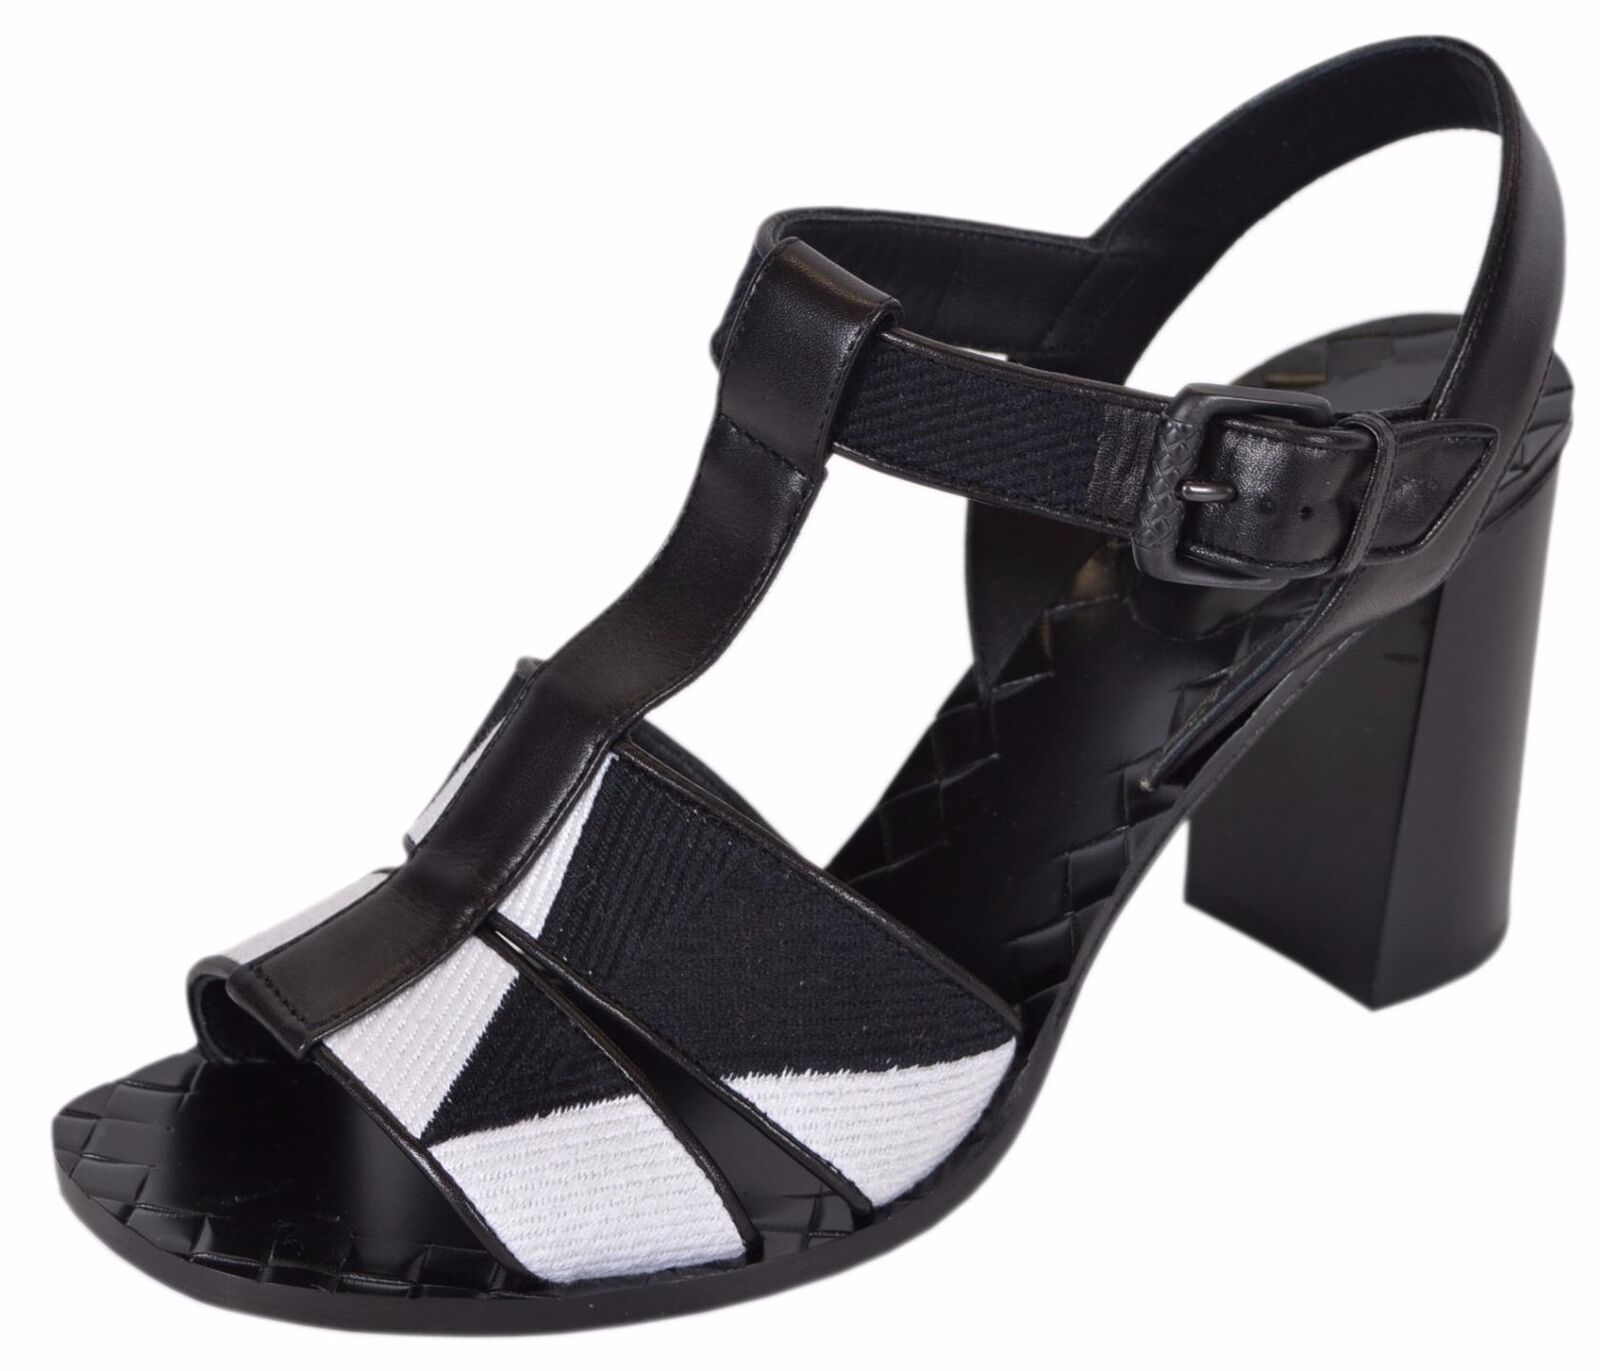 NEW Bottega Veneta  990 407090 Black White colorblock T Strap Sandals shoes 39 9